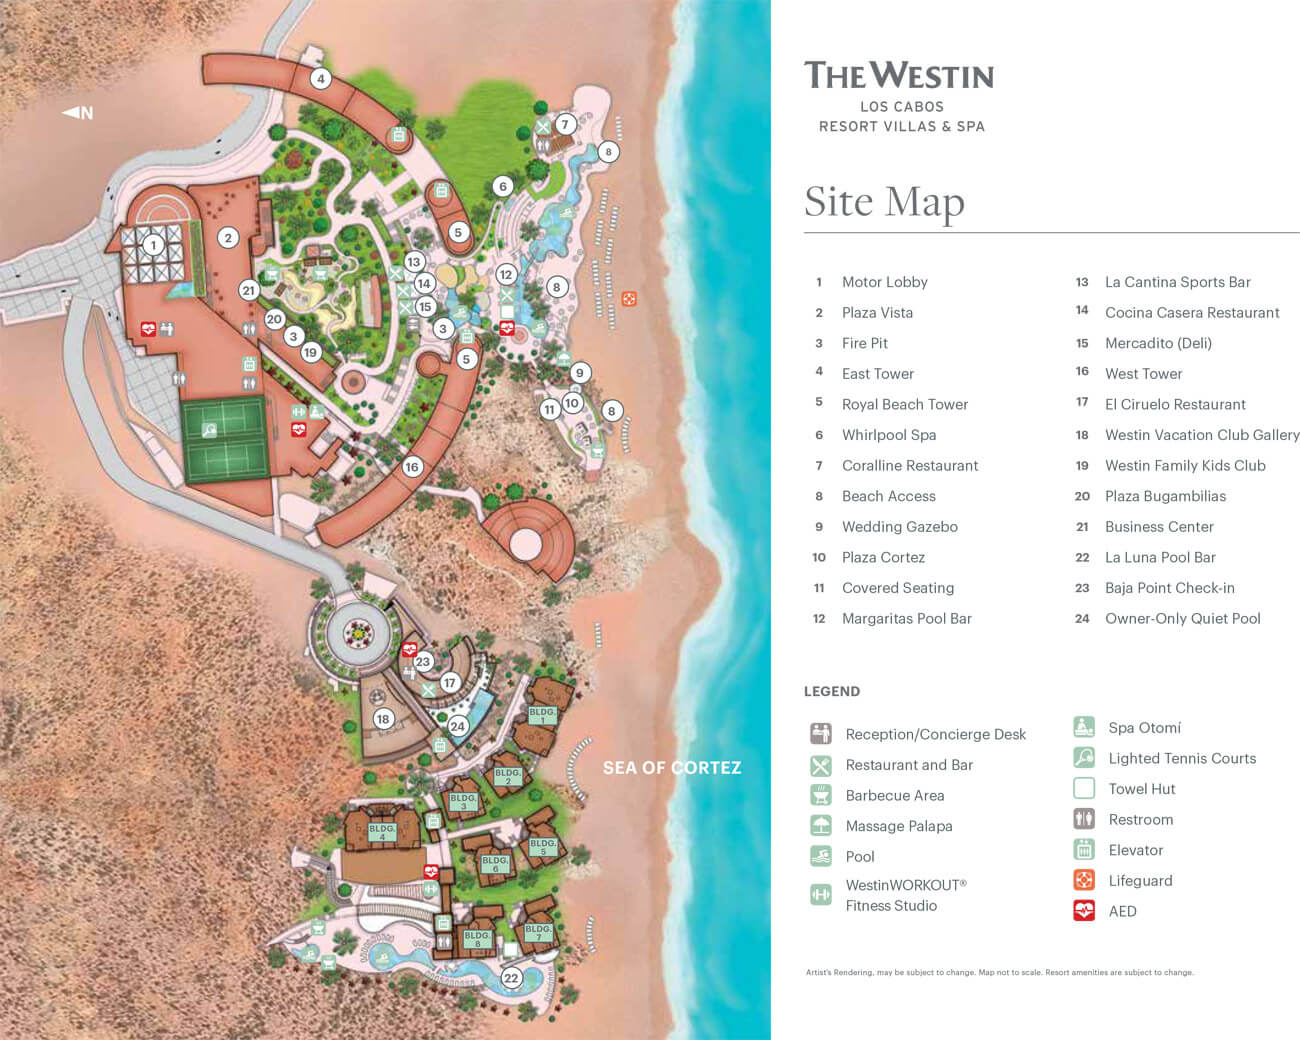 The Westin Los Cabos Resort Villas & Spa Resort Map